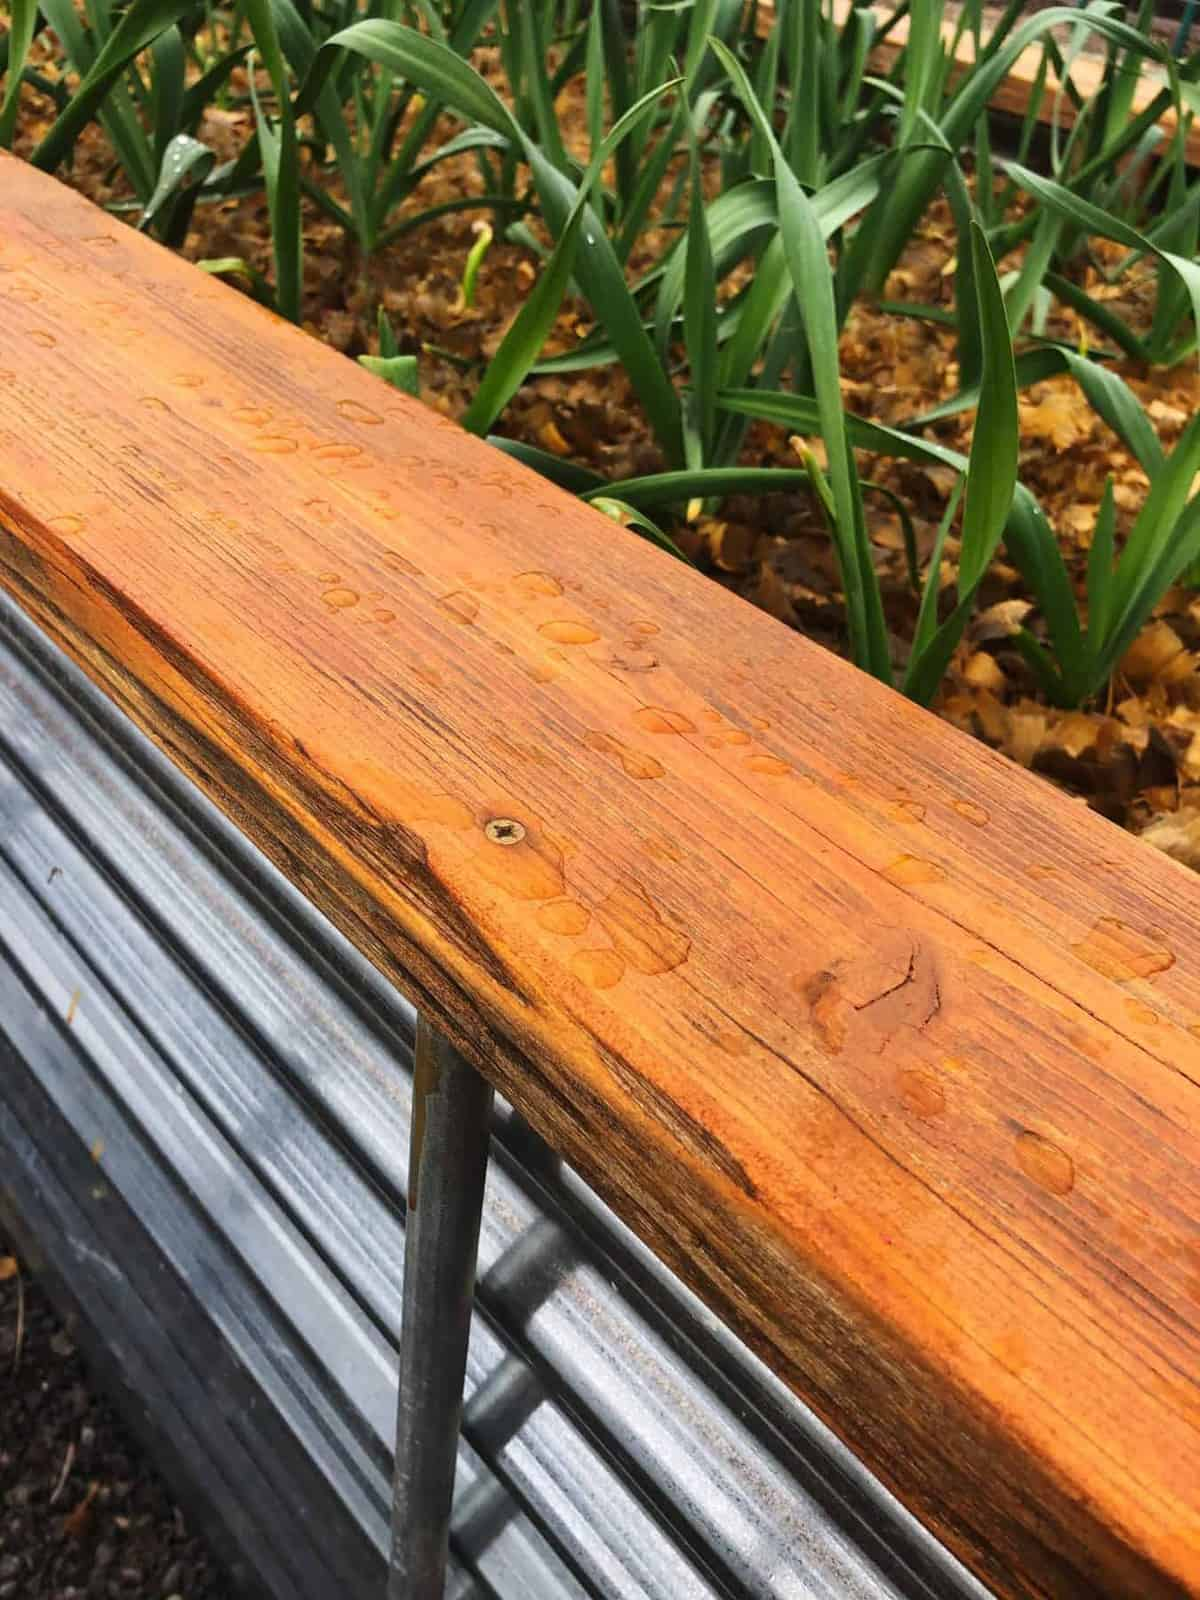 Tight view of a raised garden bed with a screw in a cedar board.